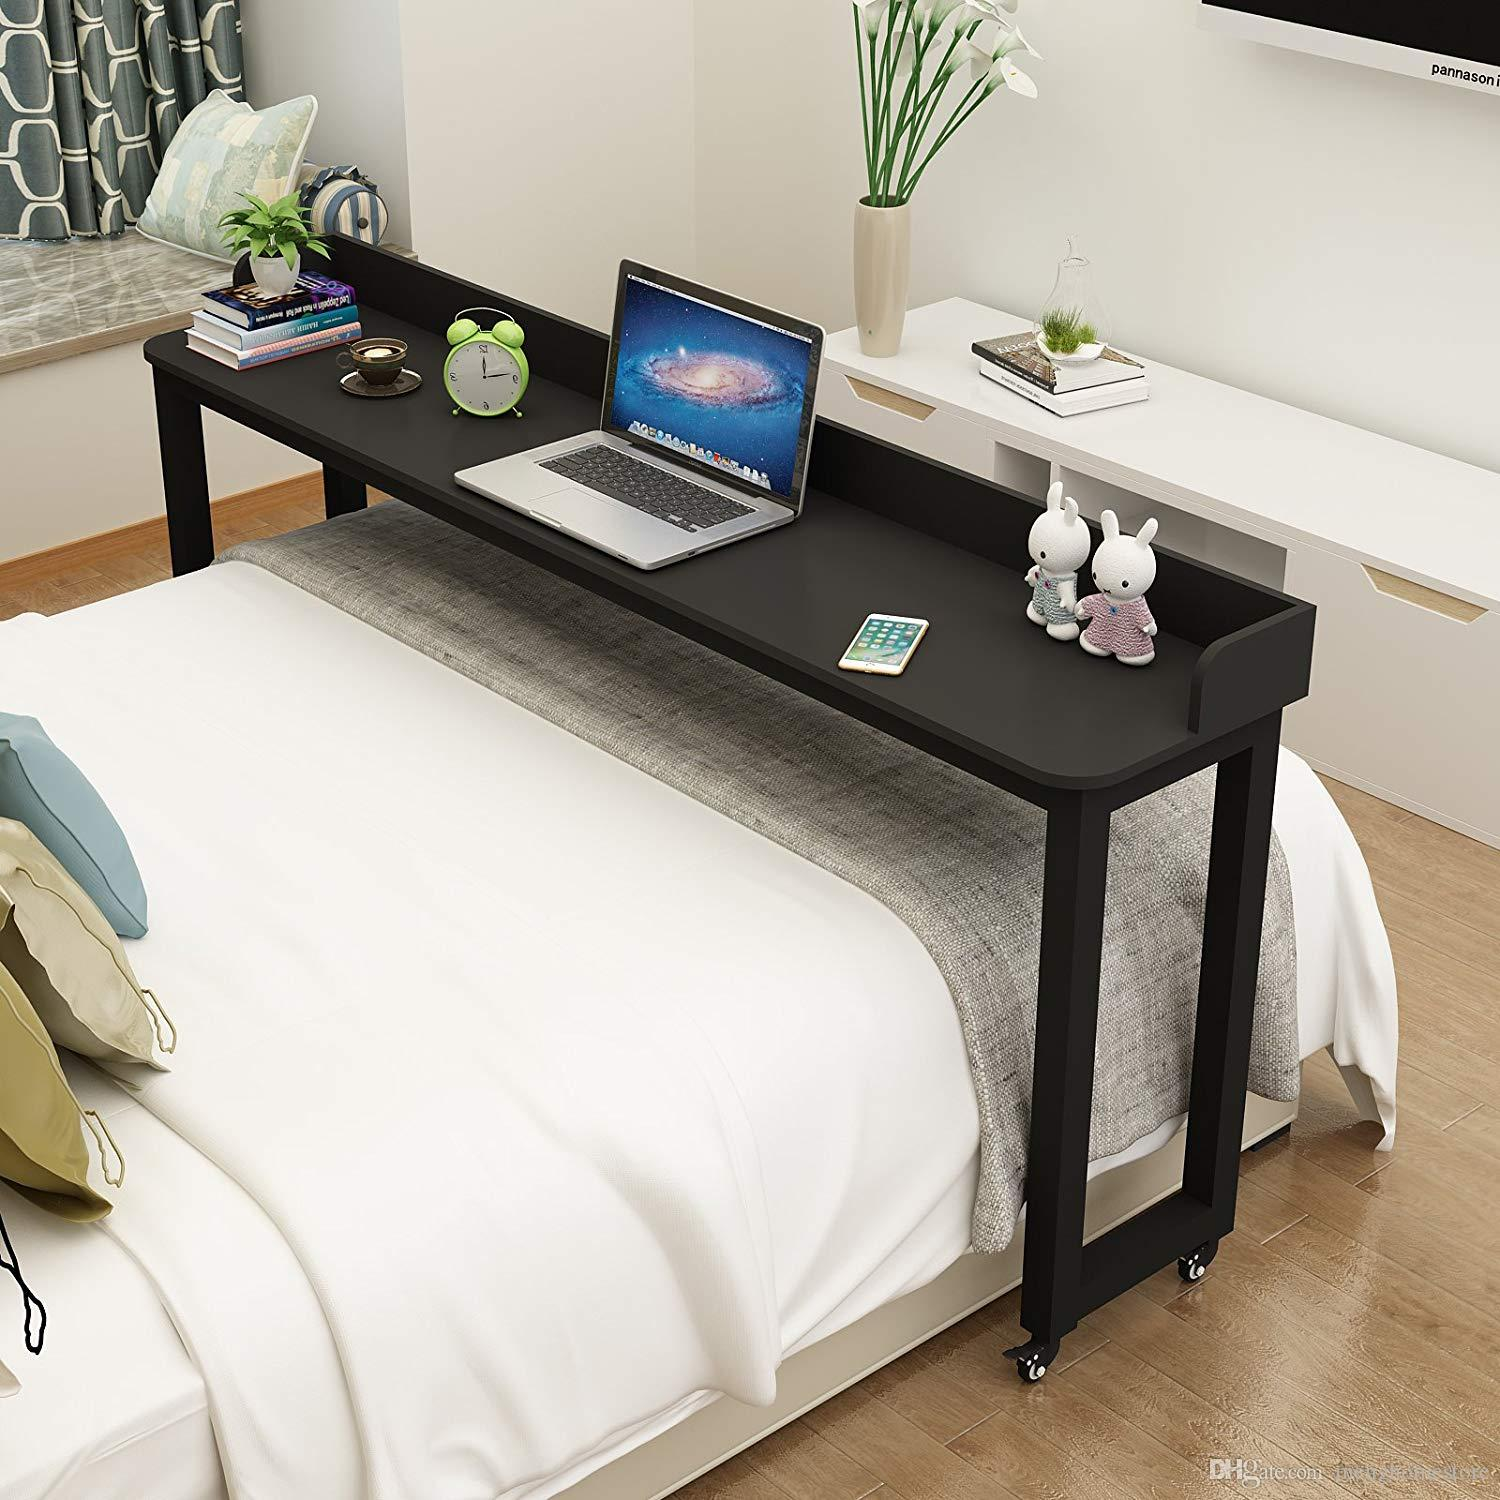 Five Uses for an Overbed Table with Storage